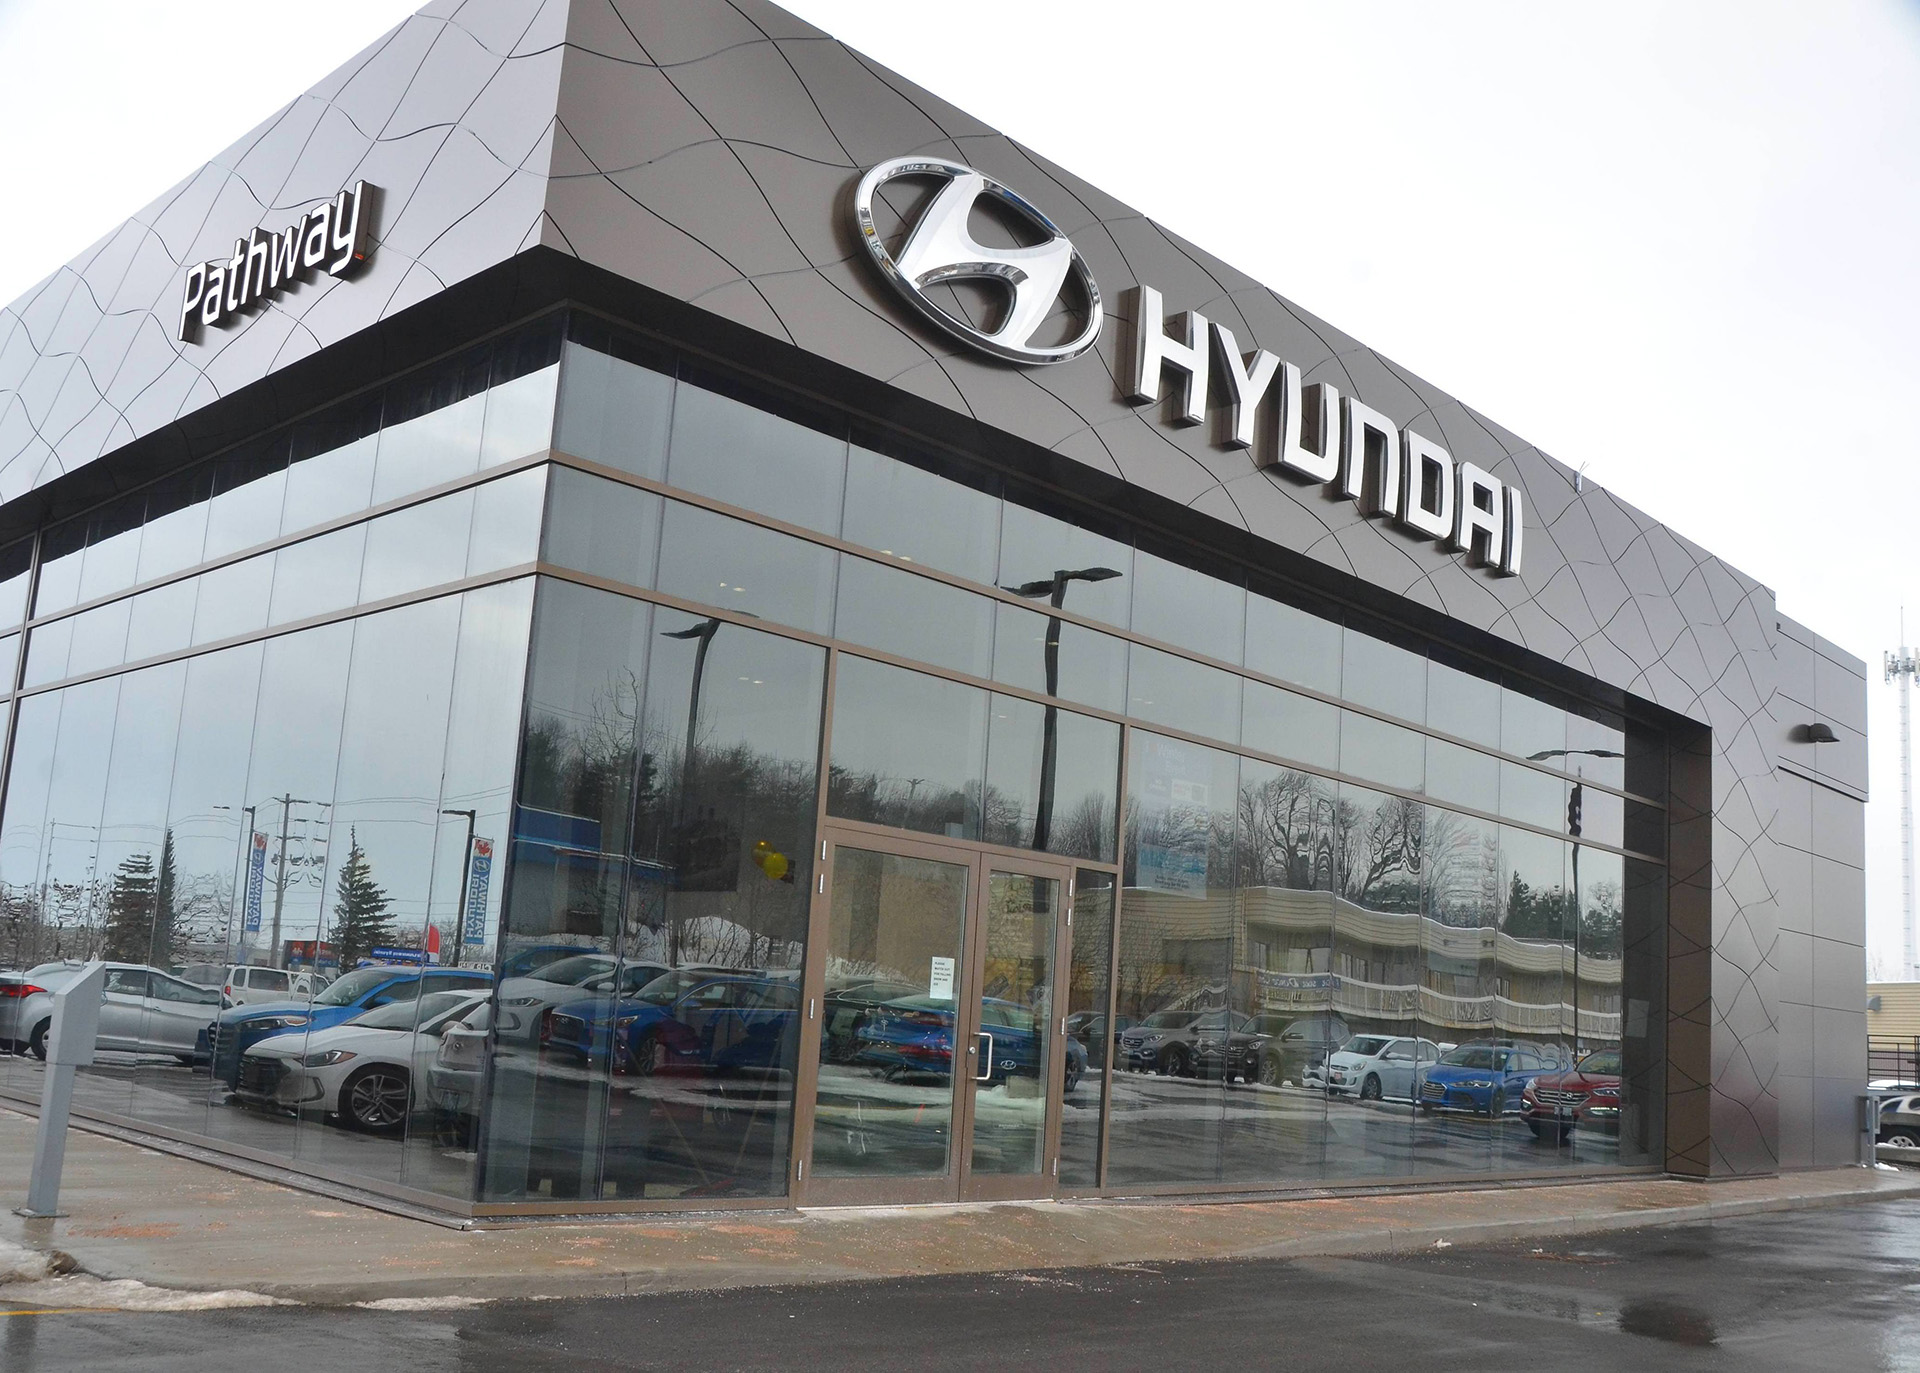 Pathway Hyundai Showroom with Logo